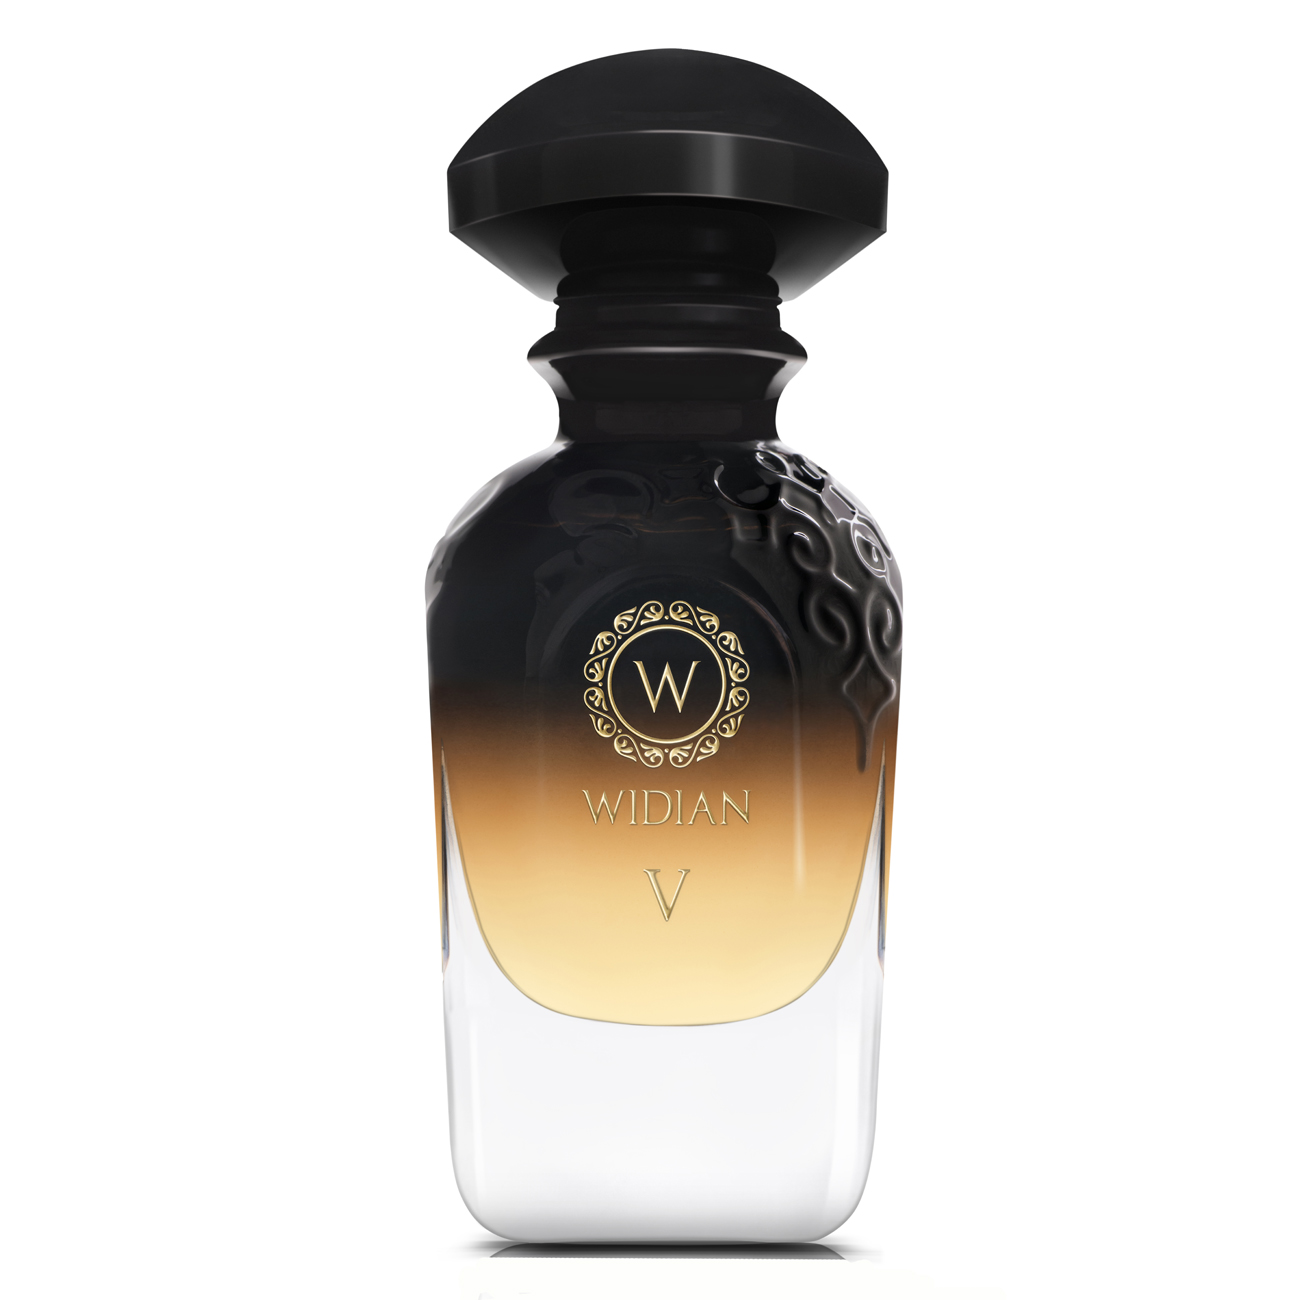 WIDIAN AJ ARABIA Black V EDP 50 ml